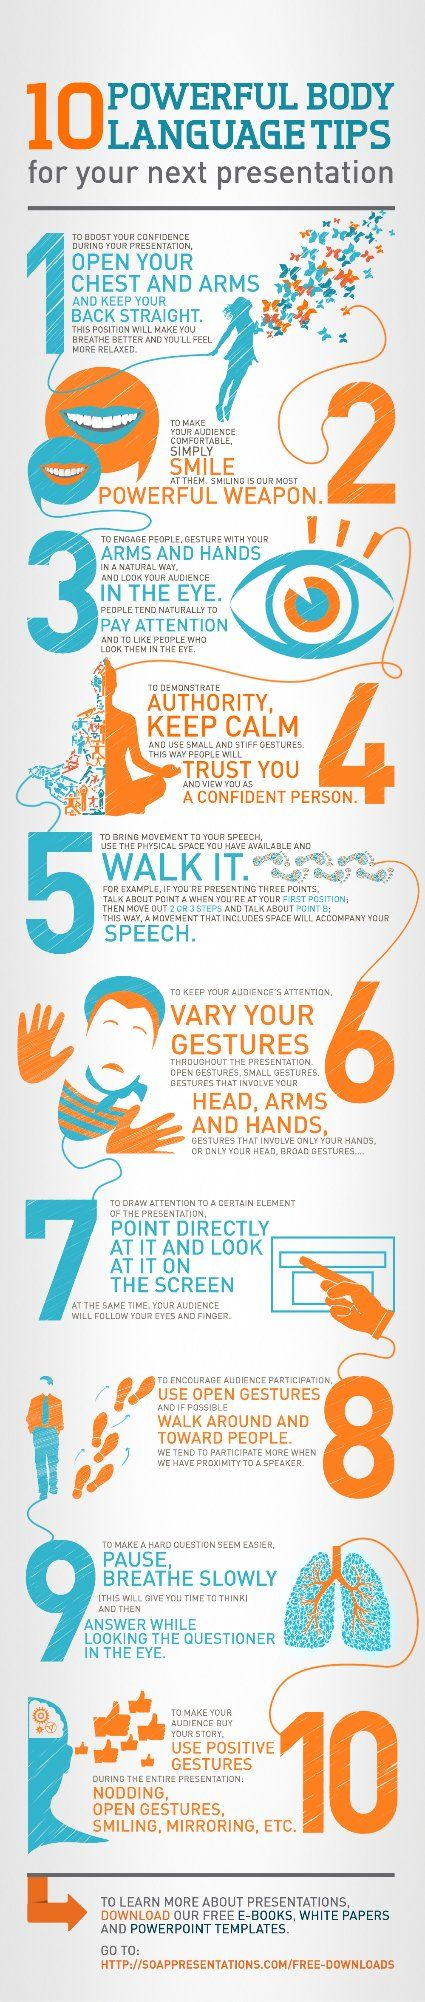 10 Powerful Body Language Tips for your next Presentation.